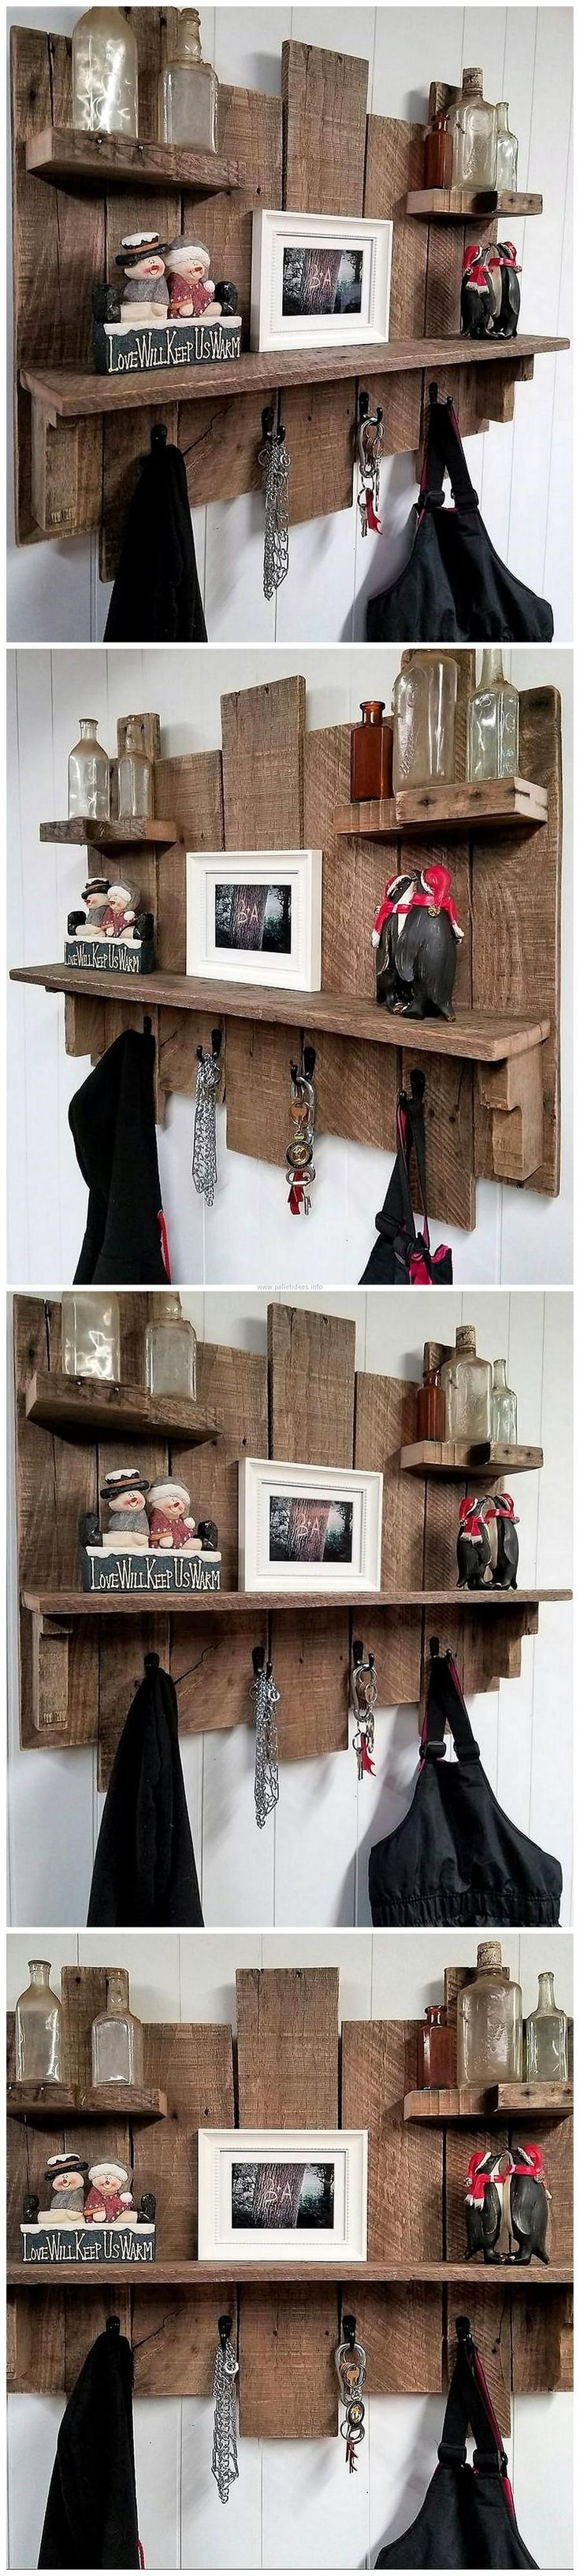 The items that fulfill multiple purposes are great because they save the space as well as the money; it eliminates the requirement of buying or creating the products for different purpose separately. Wood pallets serve well by giving a chance to reshape them into different unique ideas with one item fulfilling many purposes.